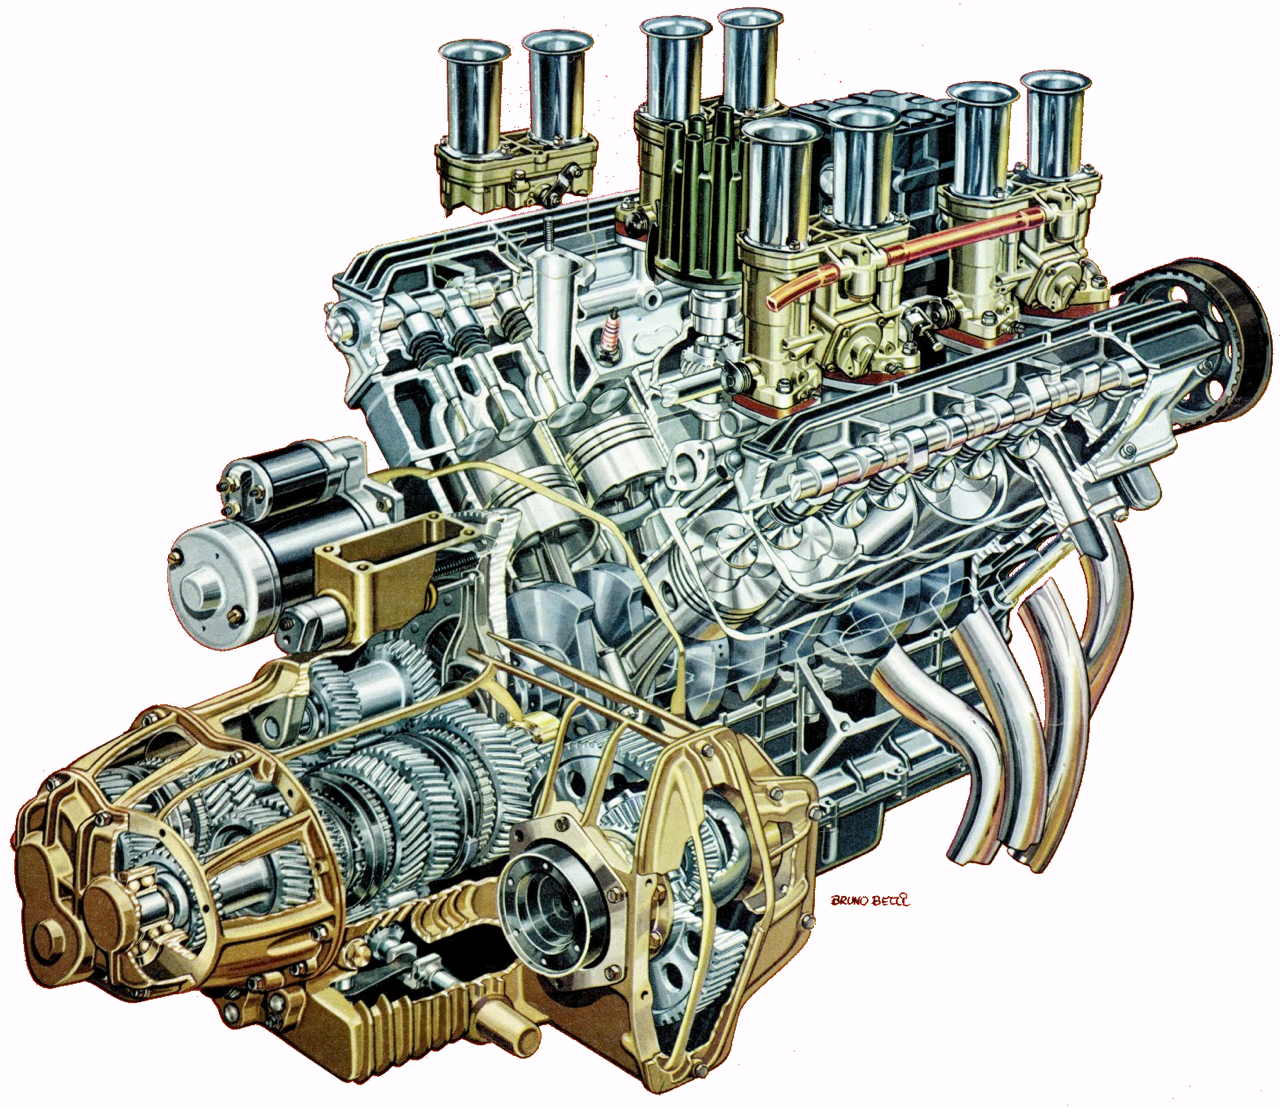 V8 Engine Drawing At Free For Personal Use Ferrari Formula 1 Diagram 1280x1107 Cutaway Illustration Race Engines Amp Cutaways